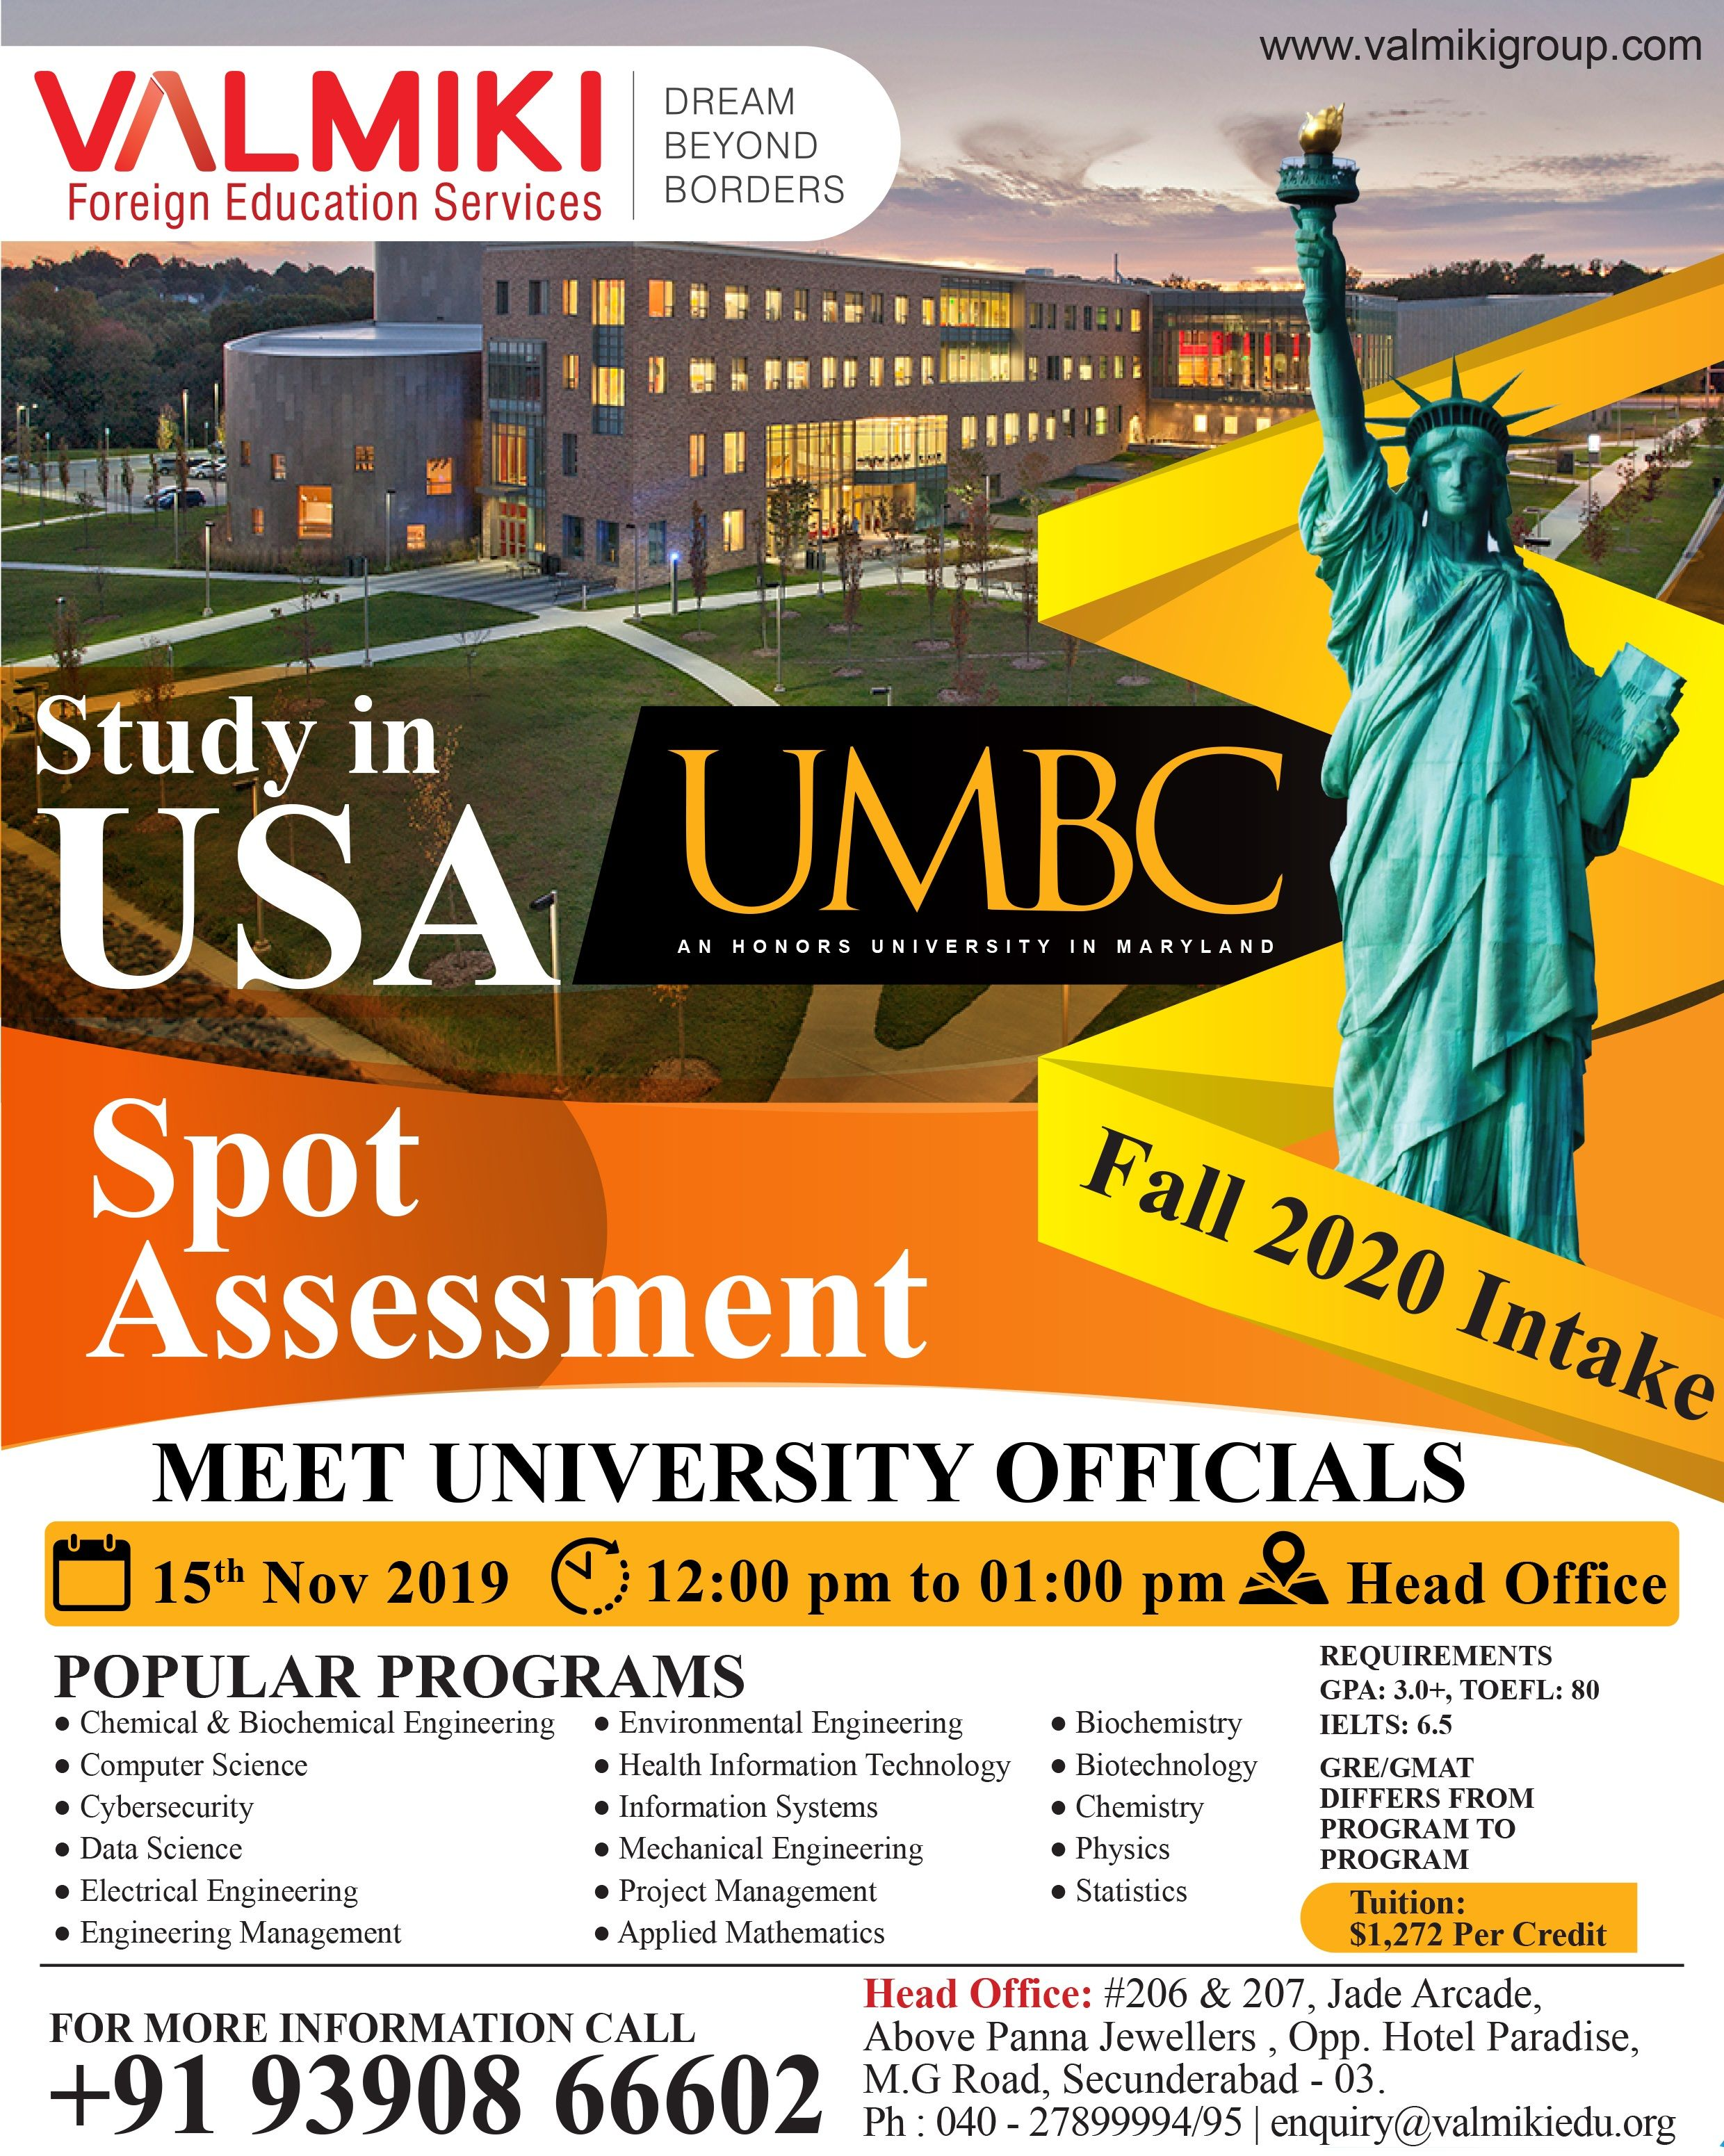 Study In Usa At Umbc University Meet University Official Valmiki Head Office And Get Exp Overseas Education Educational Consultant Environmental Engineering